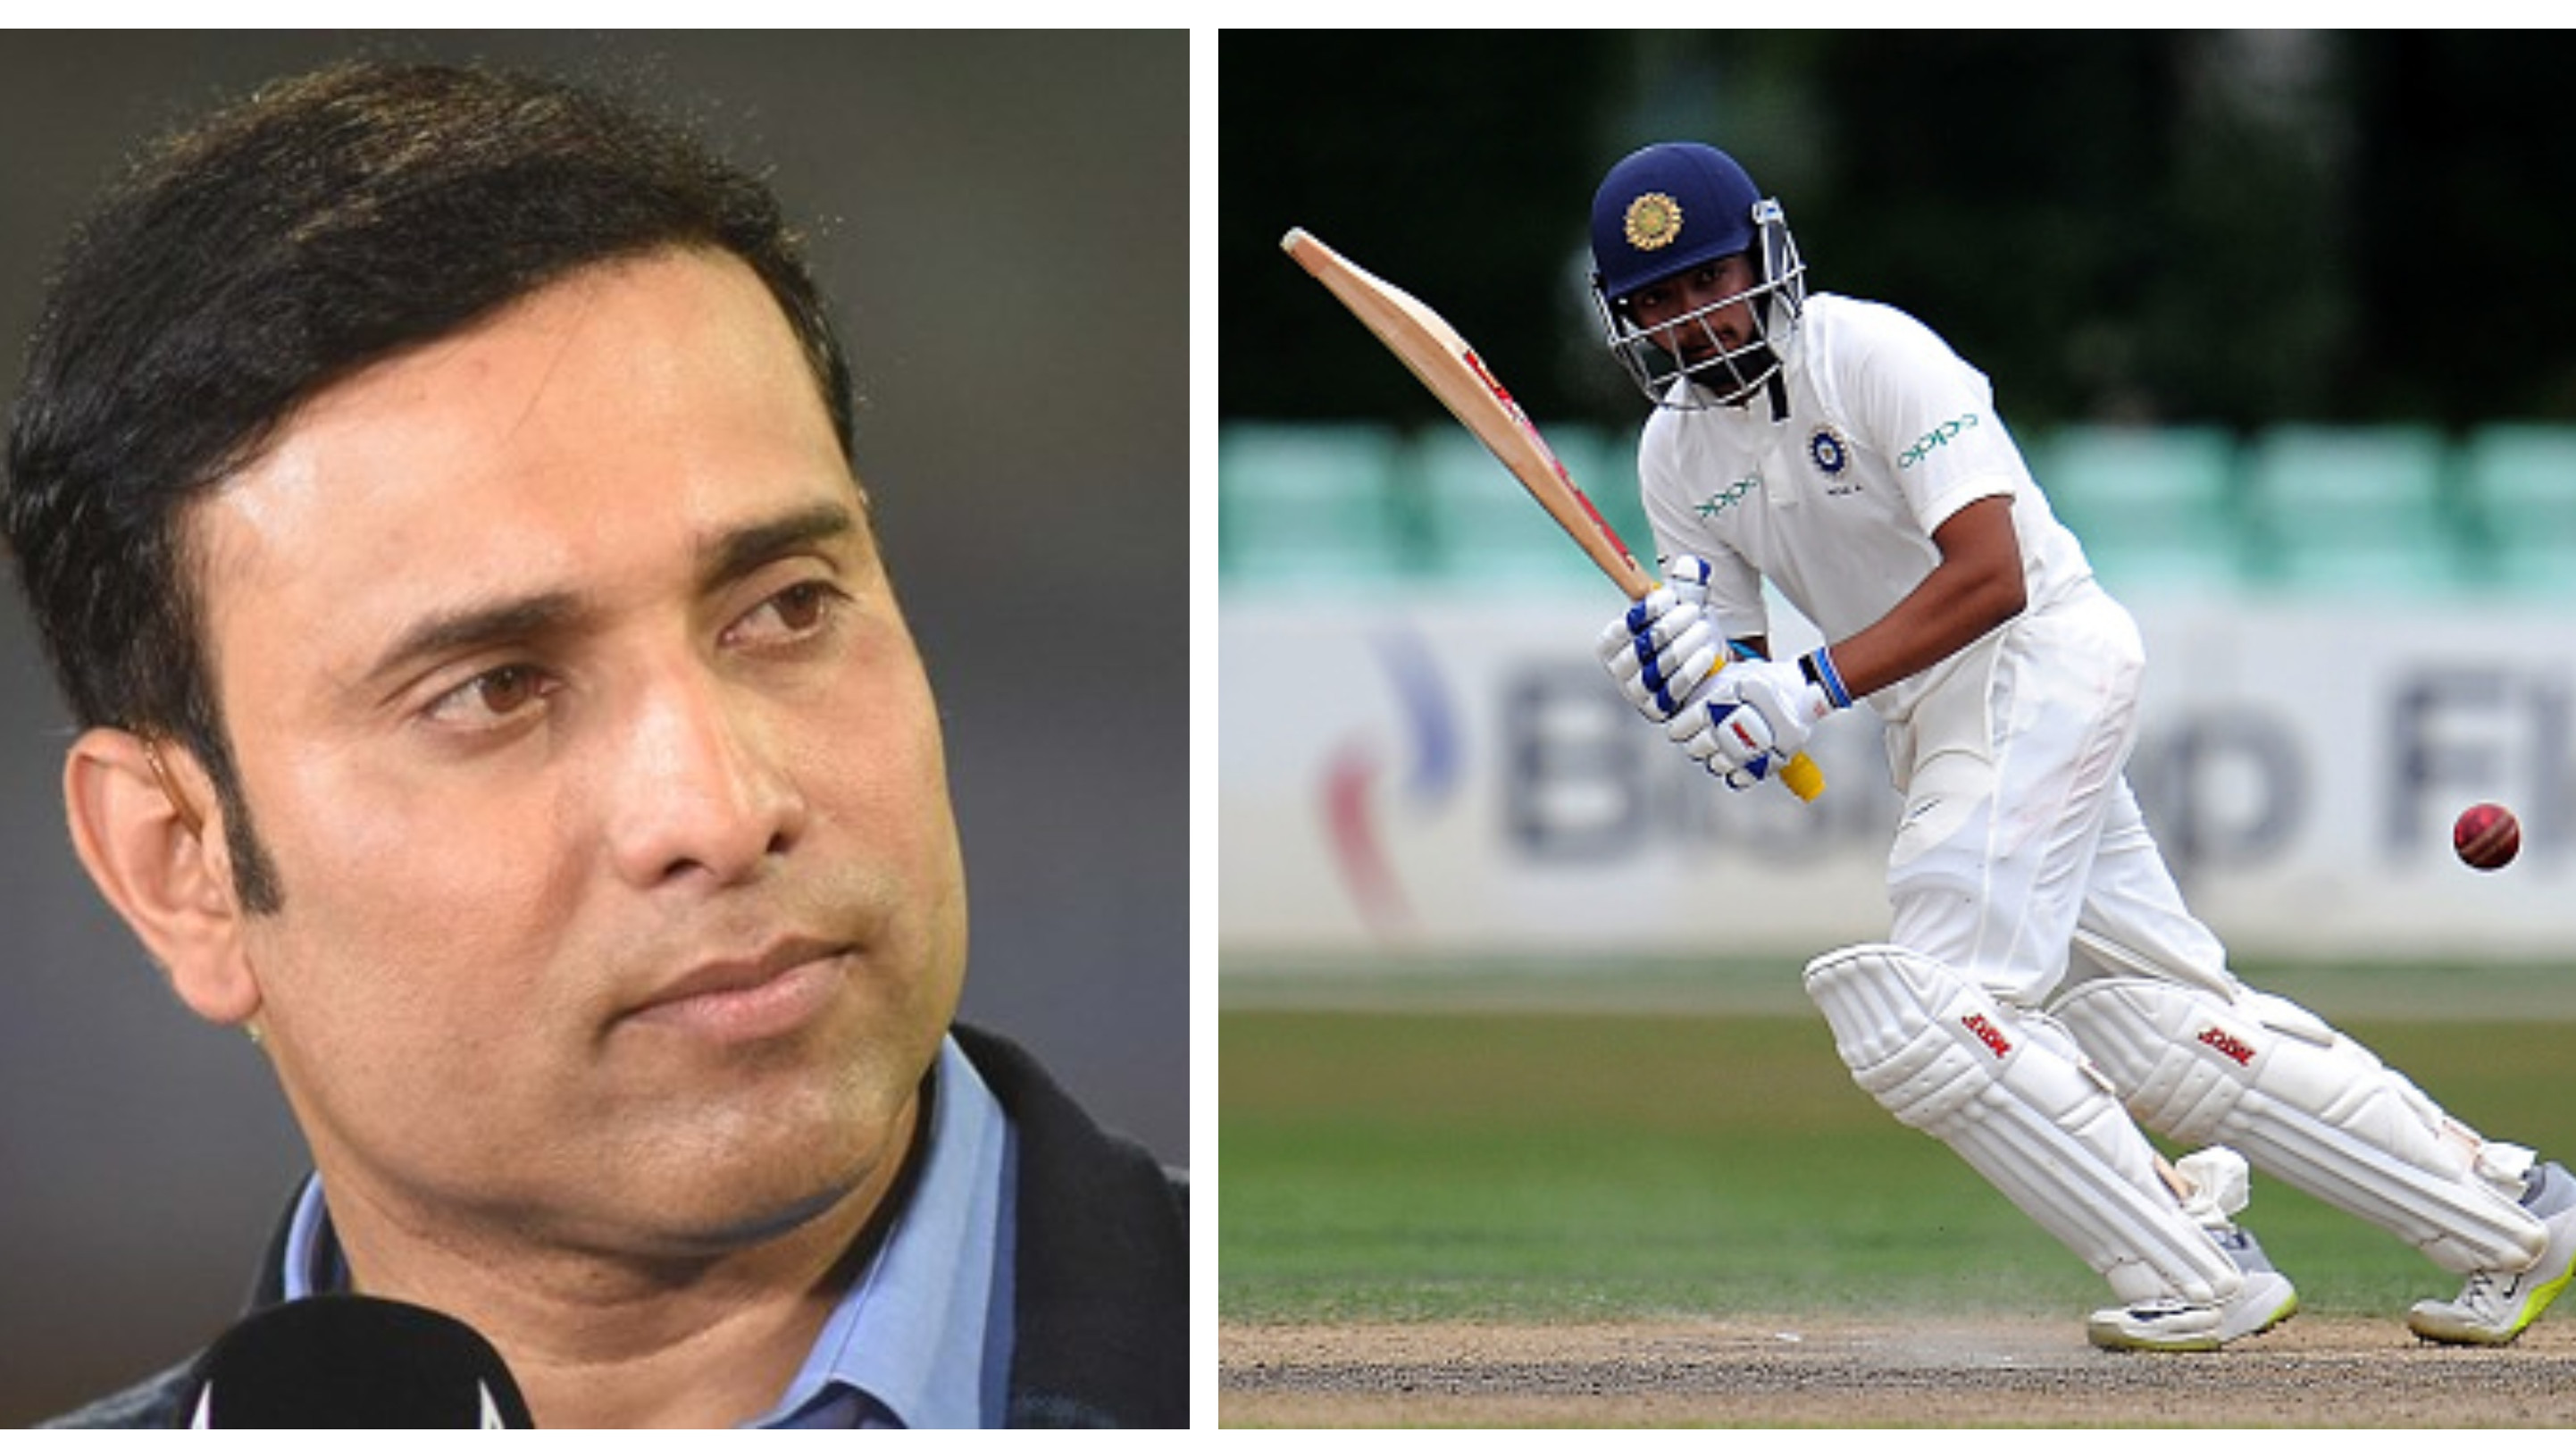 IND v WI 2018: Prithvi Shaw's maturity is beyond his years, says VVS Laxman